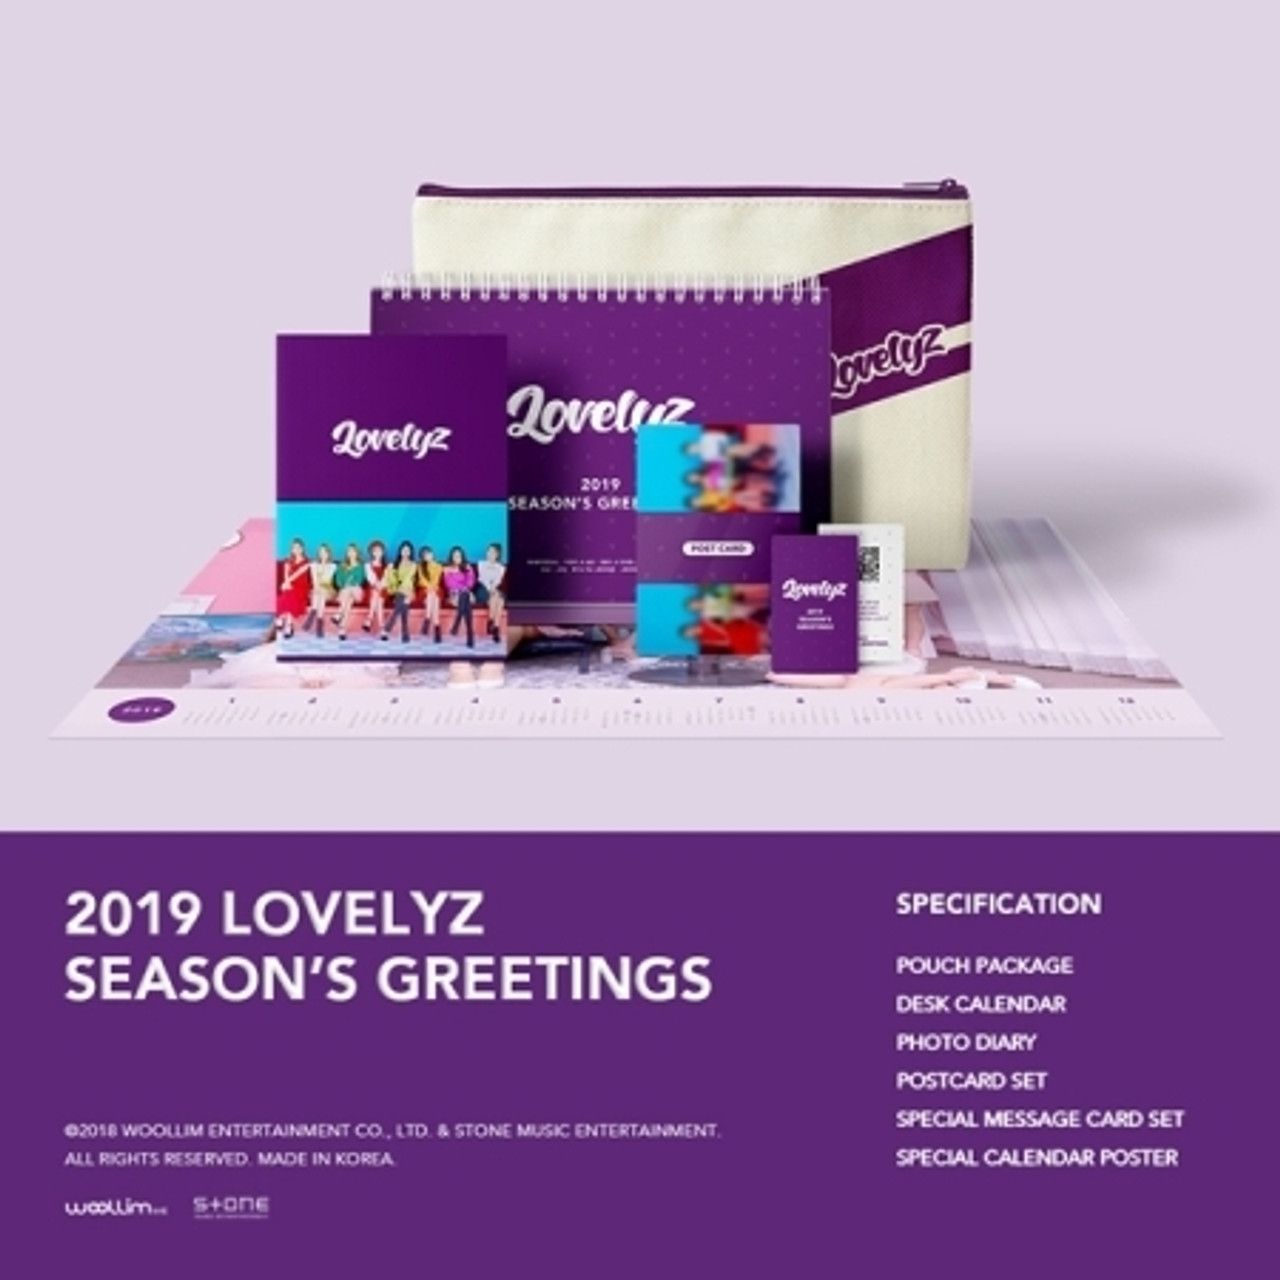 LOVELYZ - 2019 LOVELYZ SEASON GREETINGS + Poster